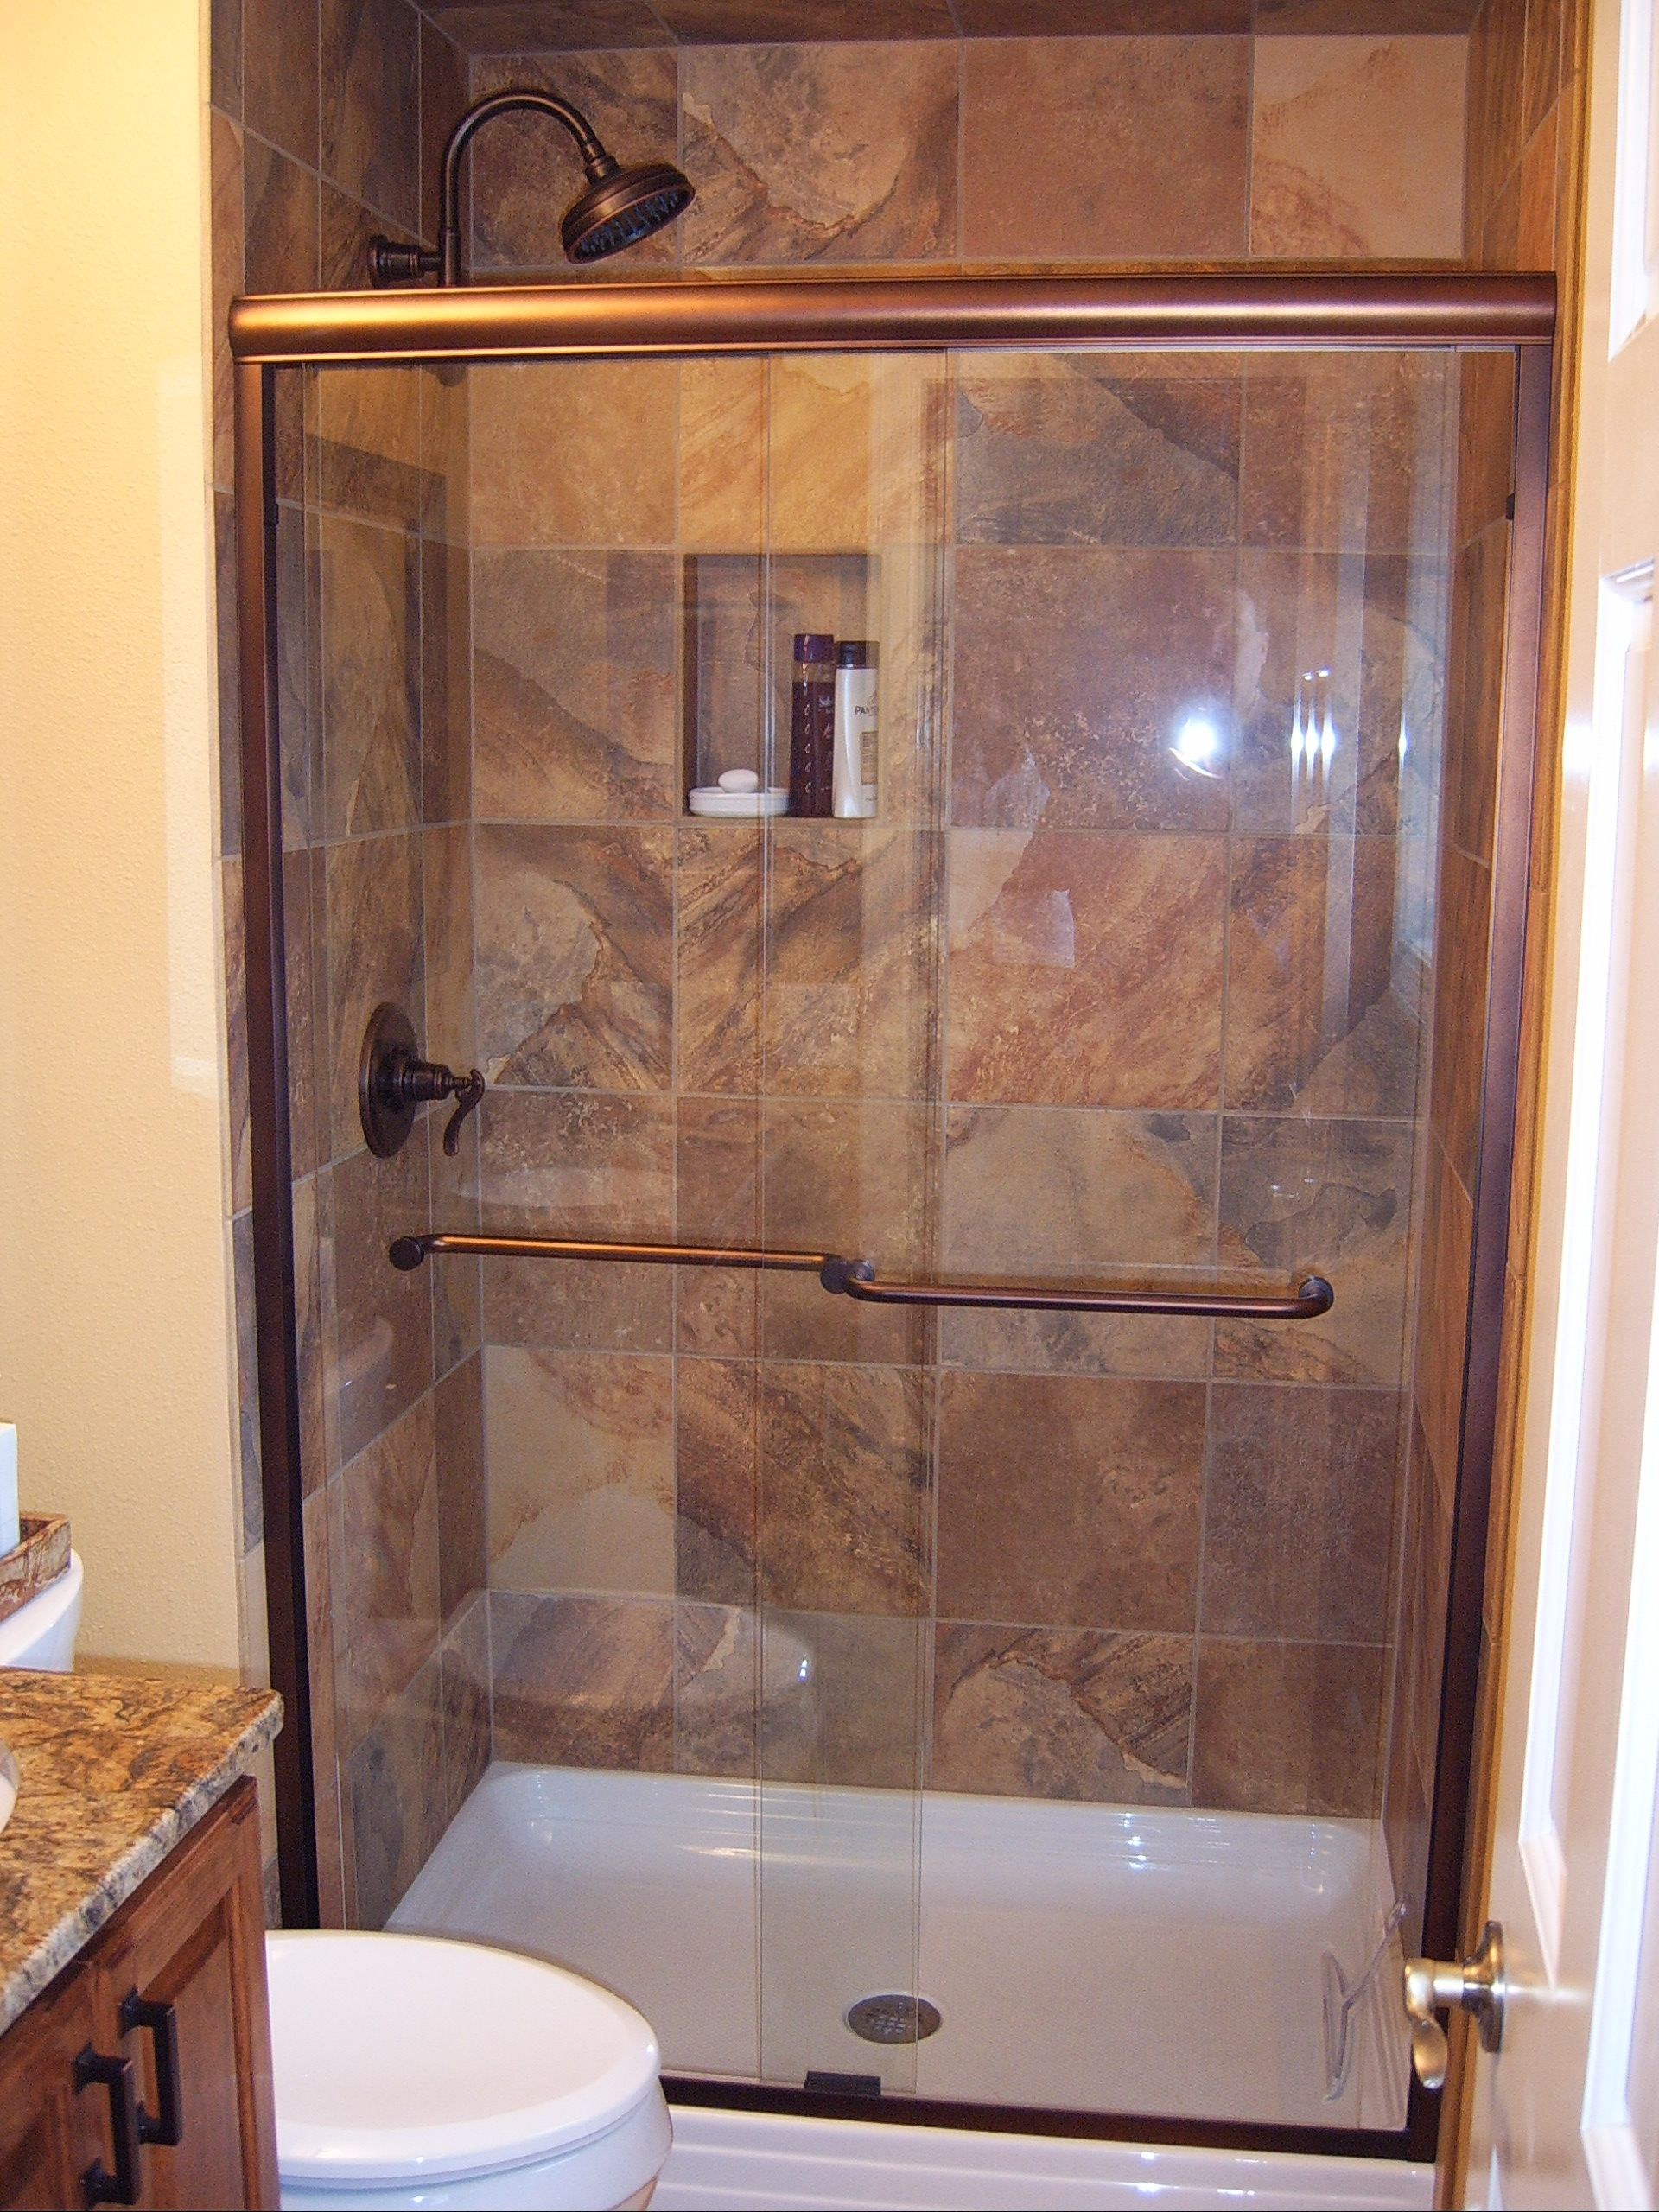 Average small bathroom remodel labor cost remodel small for Labor cost to remodel bathroom